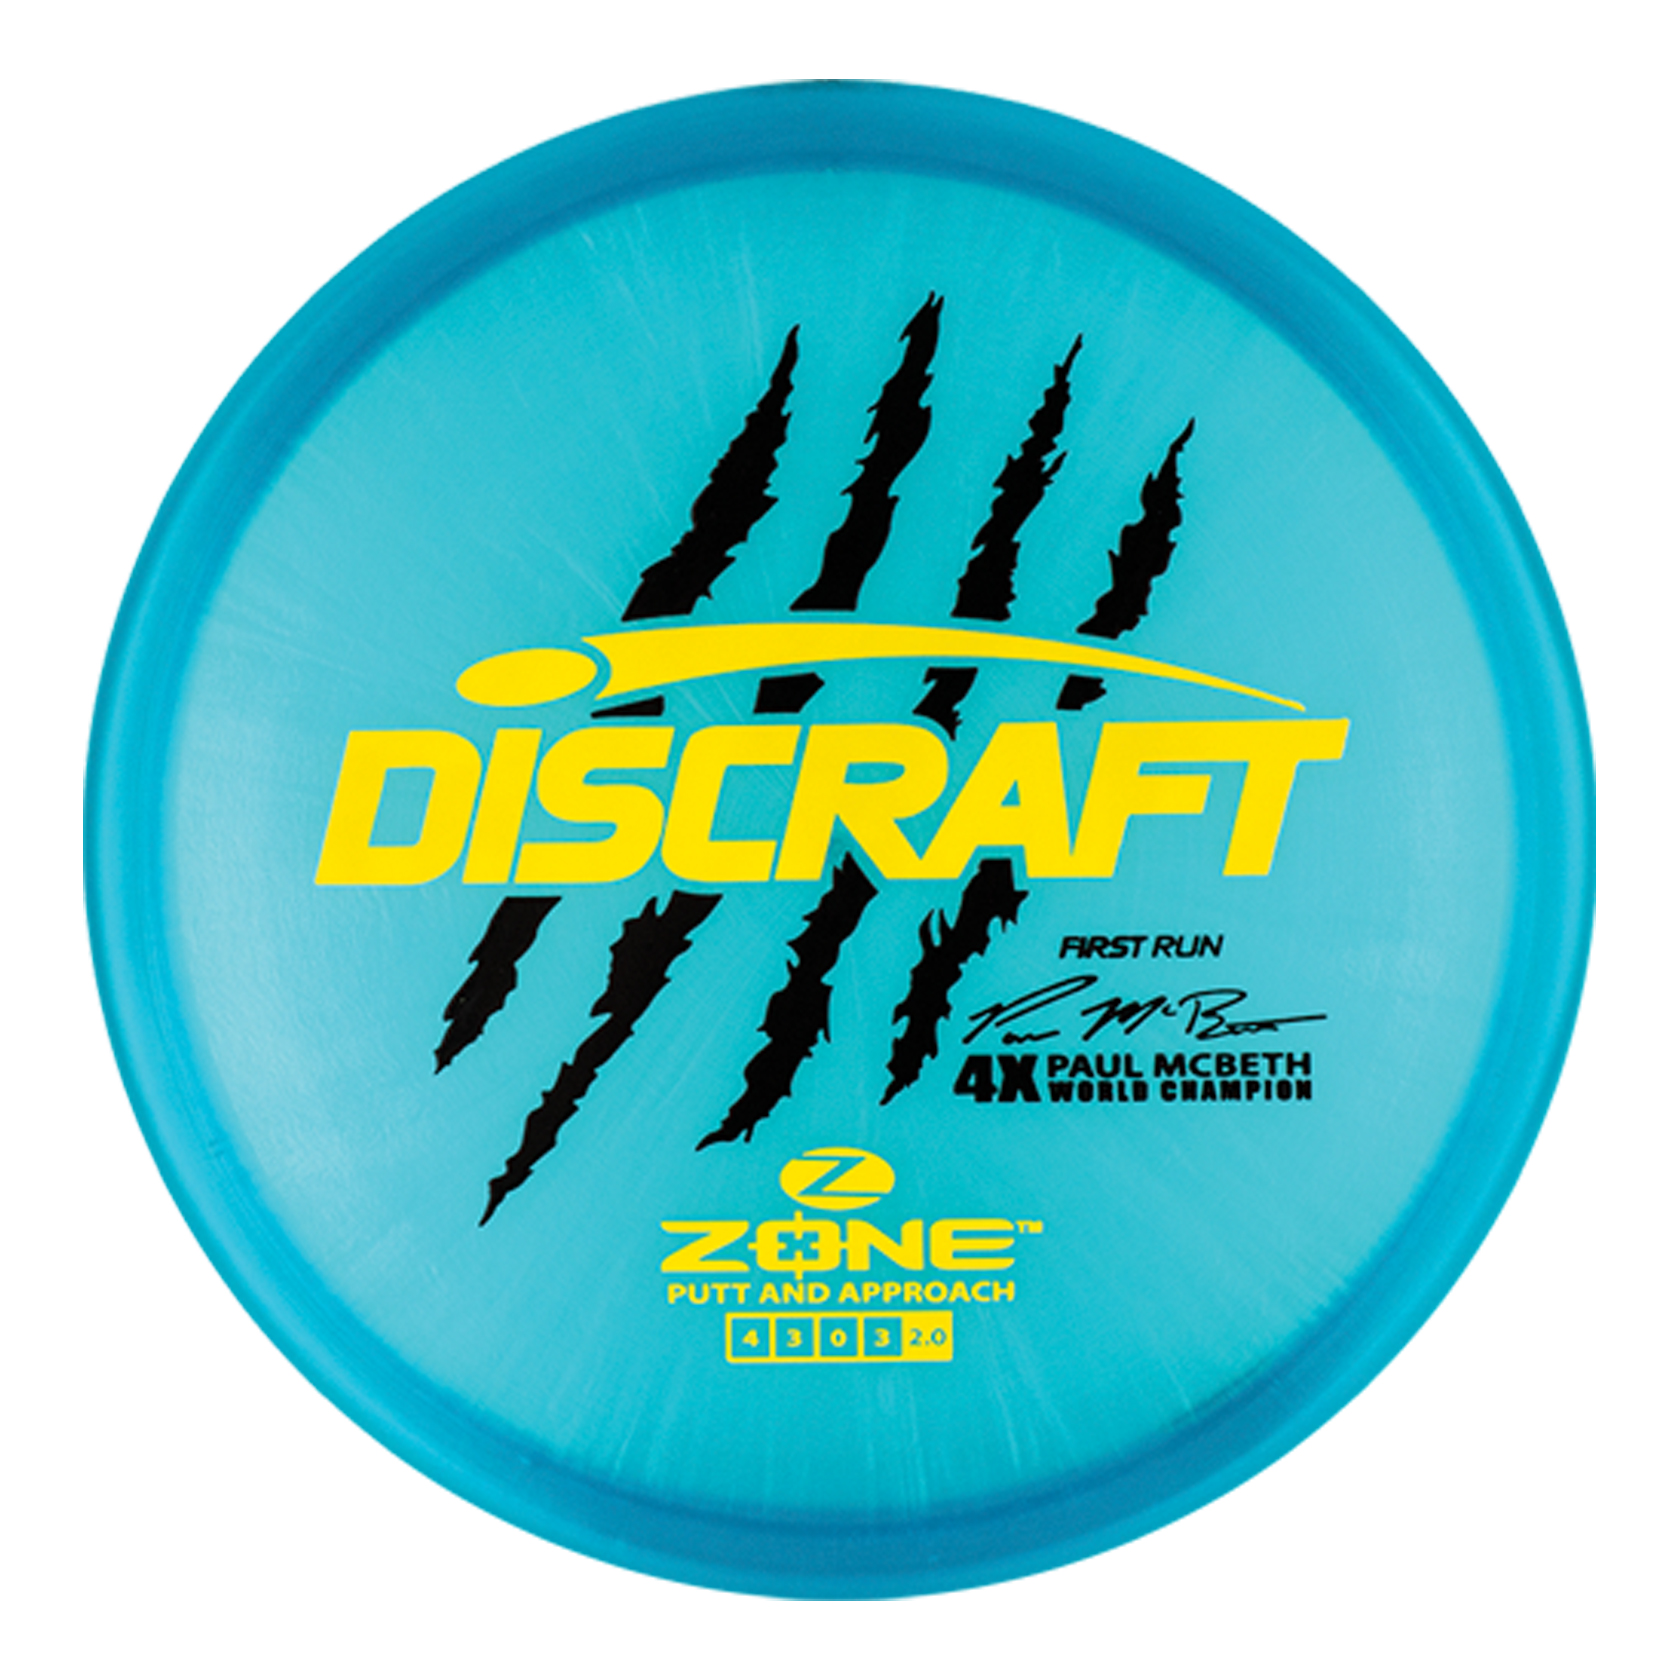 01b493c59df Zone - Paul McBeth 4x - Z - First Run - Only the Best Discs